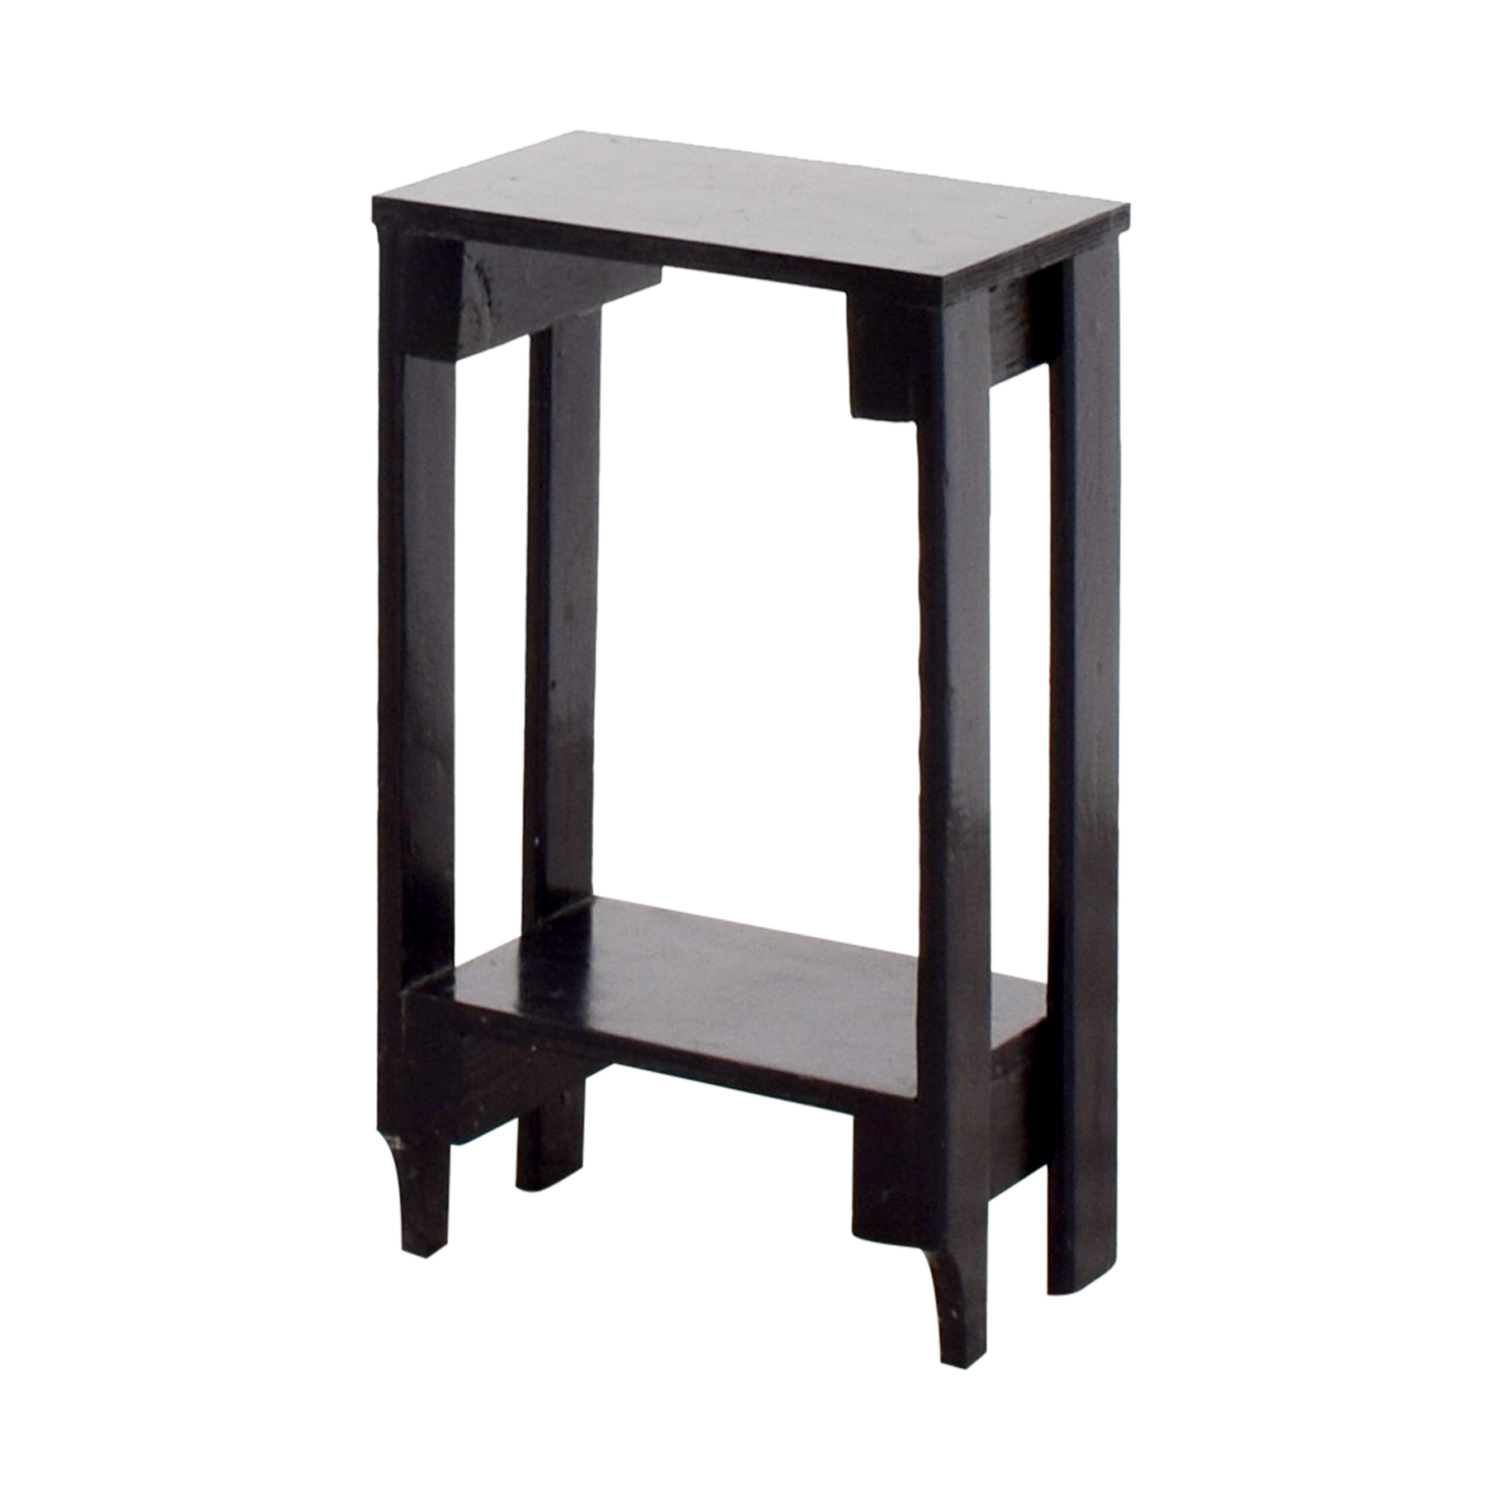 modern table ideas surprising small accent tables with awesome for bedroom refer easy the eye french west elm abacus floor lamp sofa charging station vintage industrial furniture